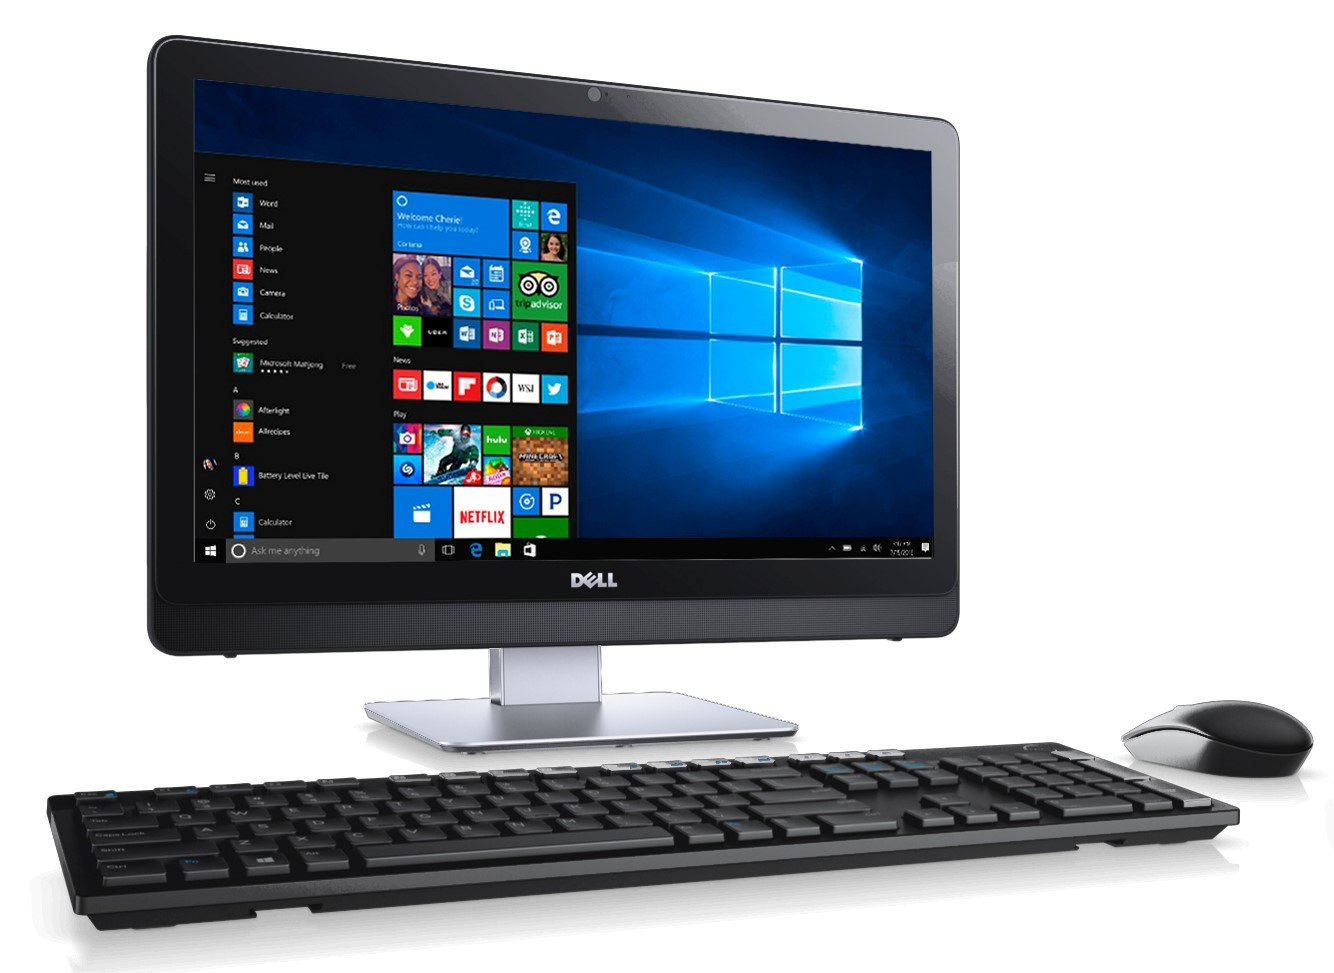 Dell Inspiron All-in-One Touch Screen Desktop (Intel Core i5, 8 GB RAM, 1 TB HDD, Intel HD On Boarding Graphics, Window 10)